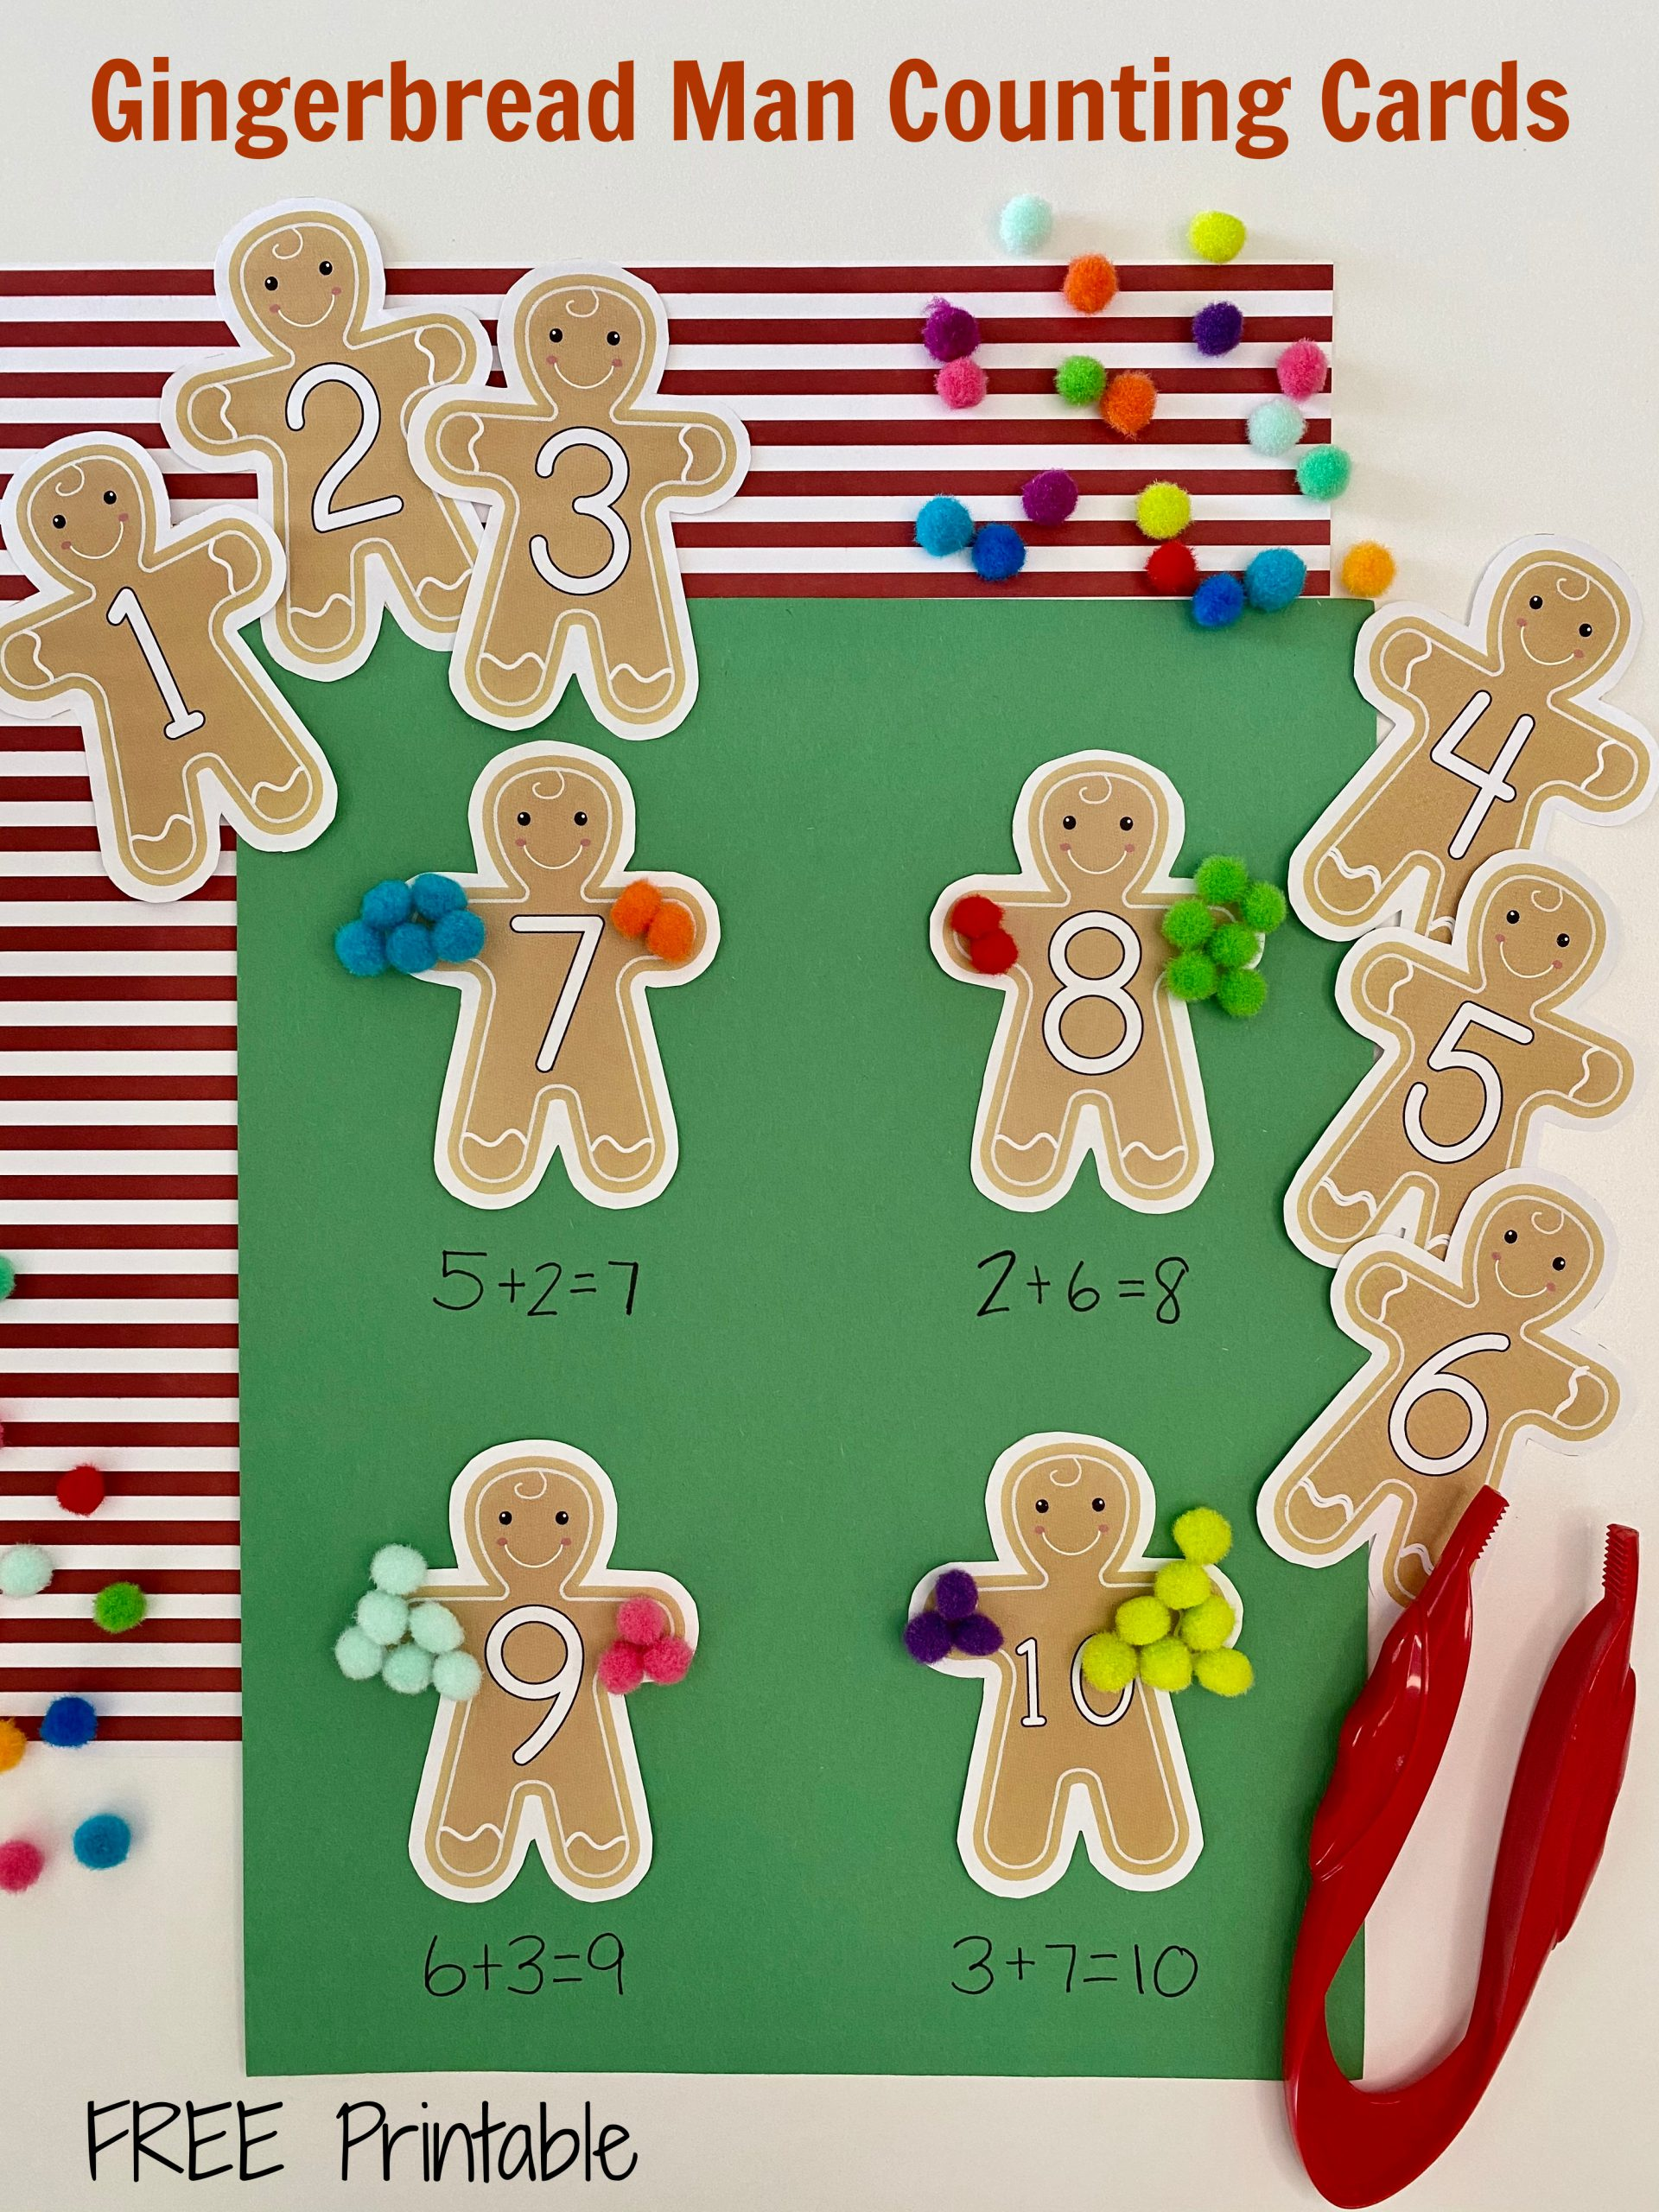 Gingerbread Man Counting Cards